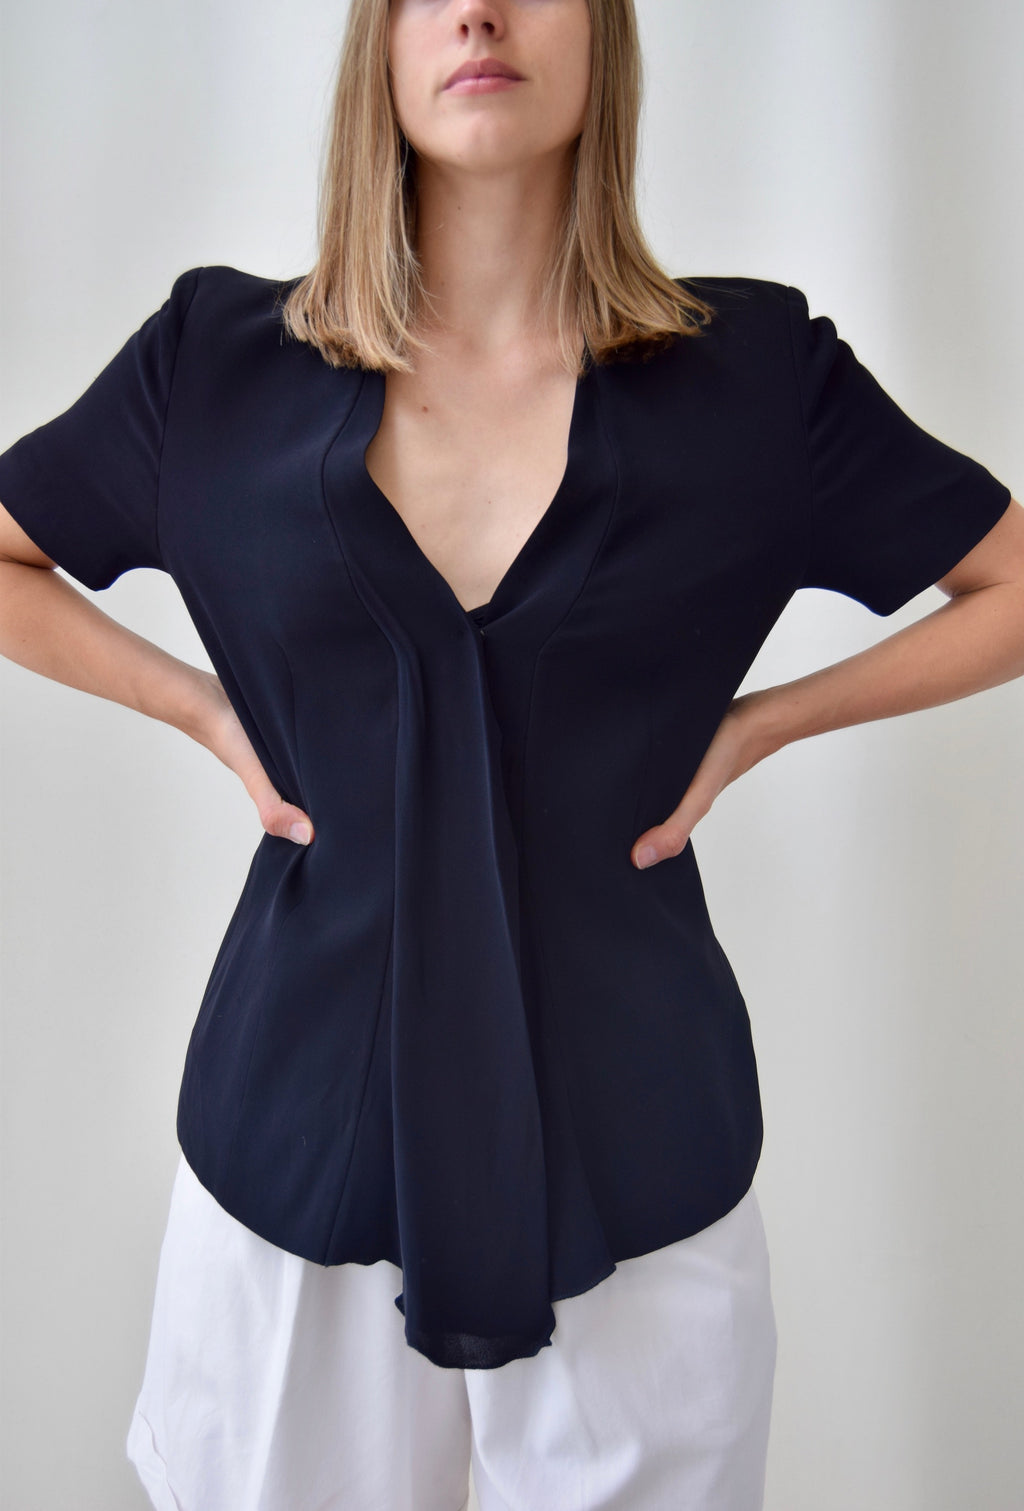 Georgio Armani Blazer Top